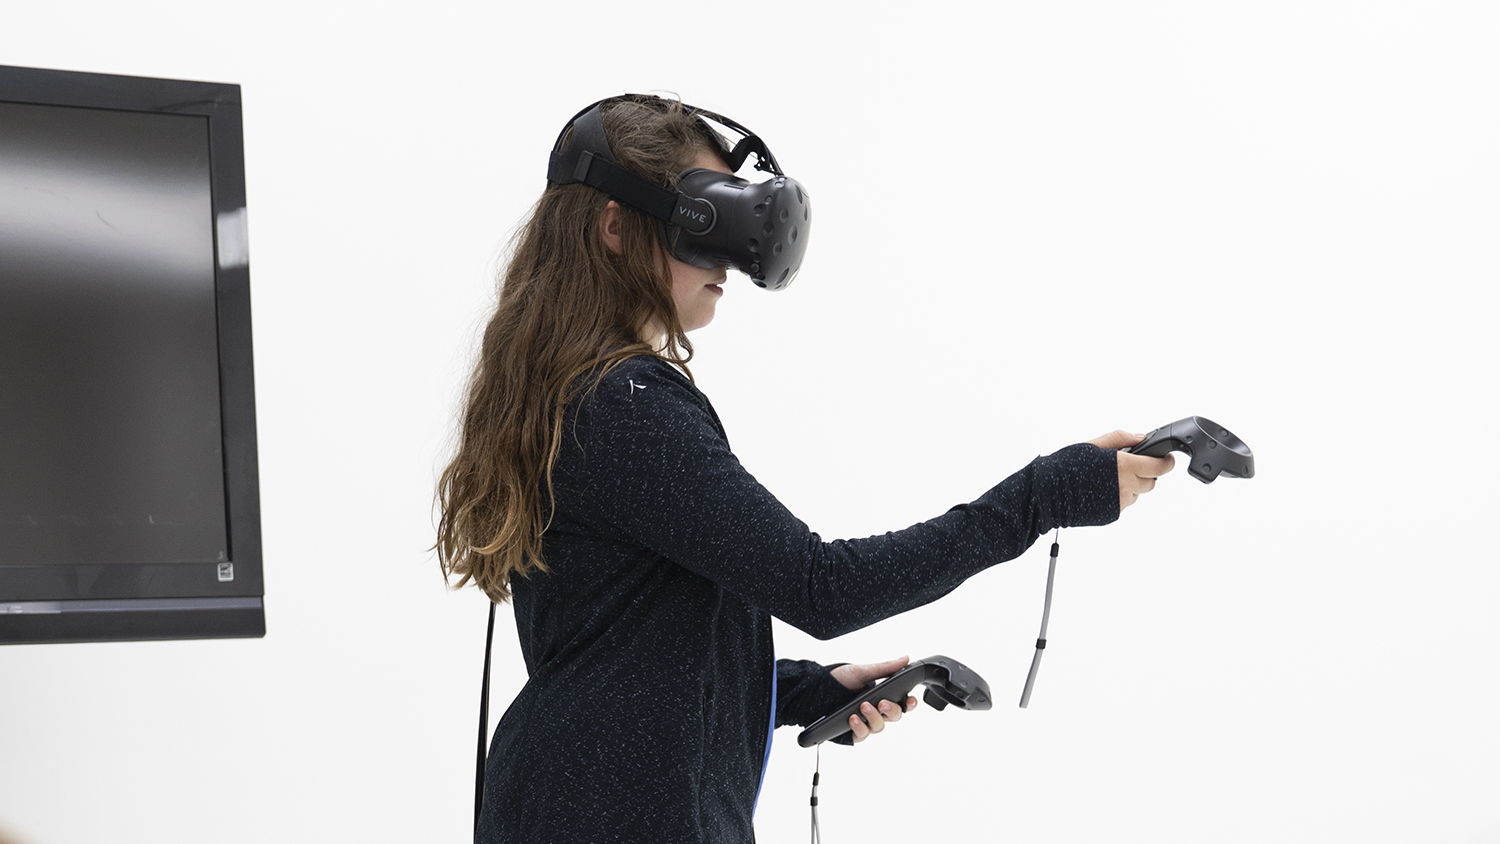 A person using a Vive VR headset